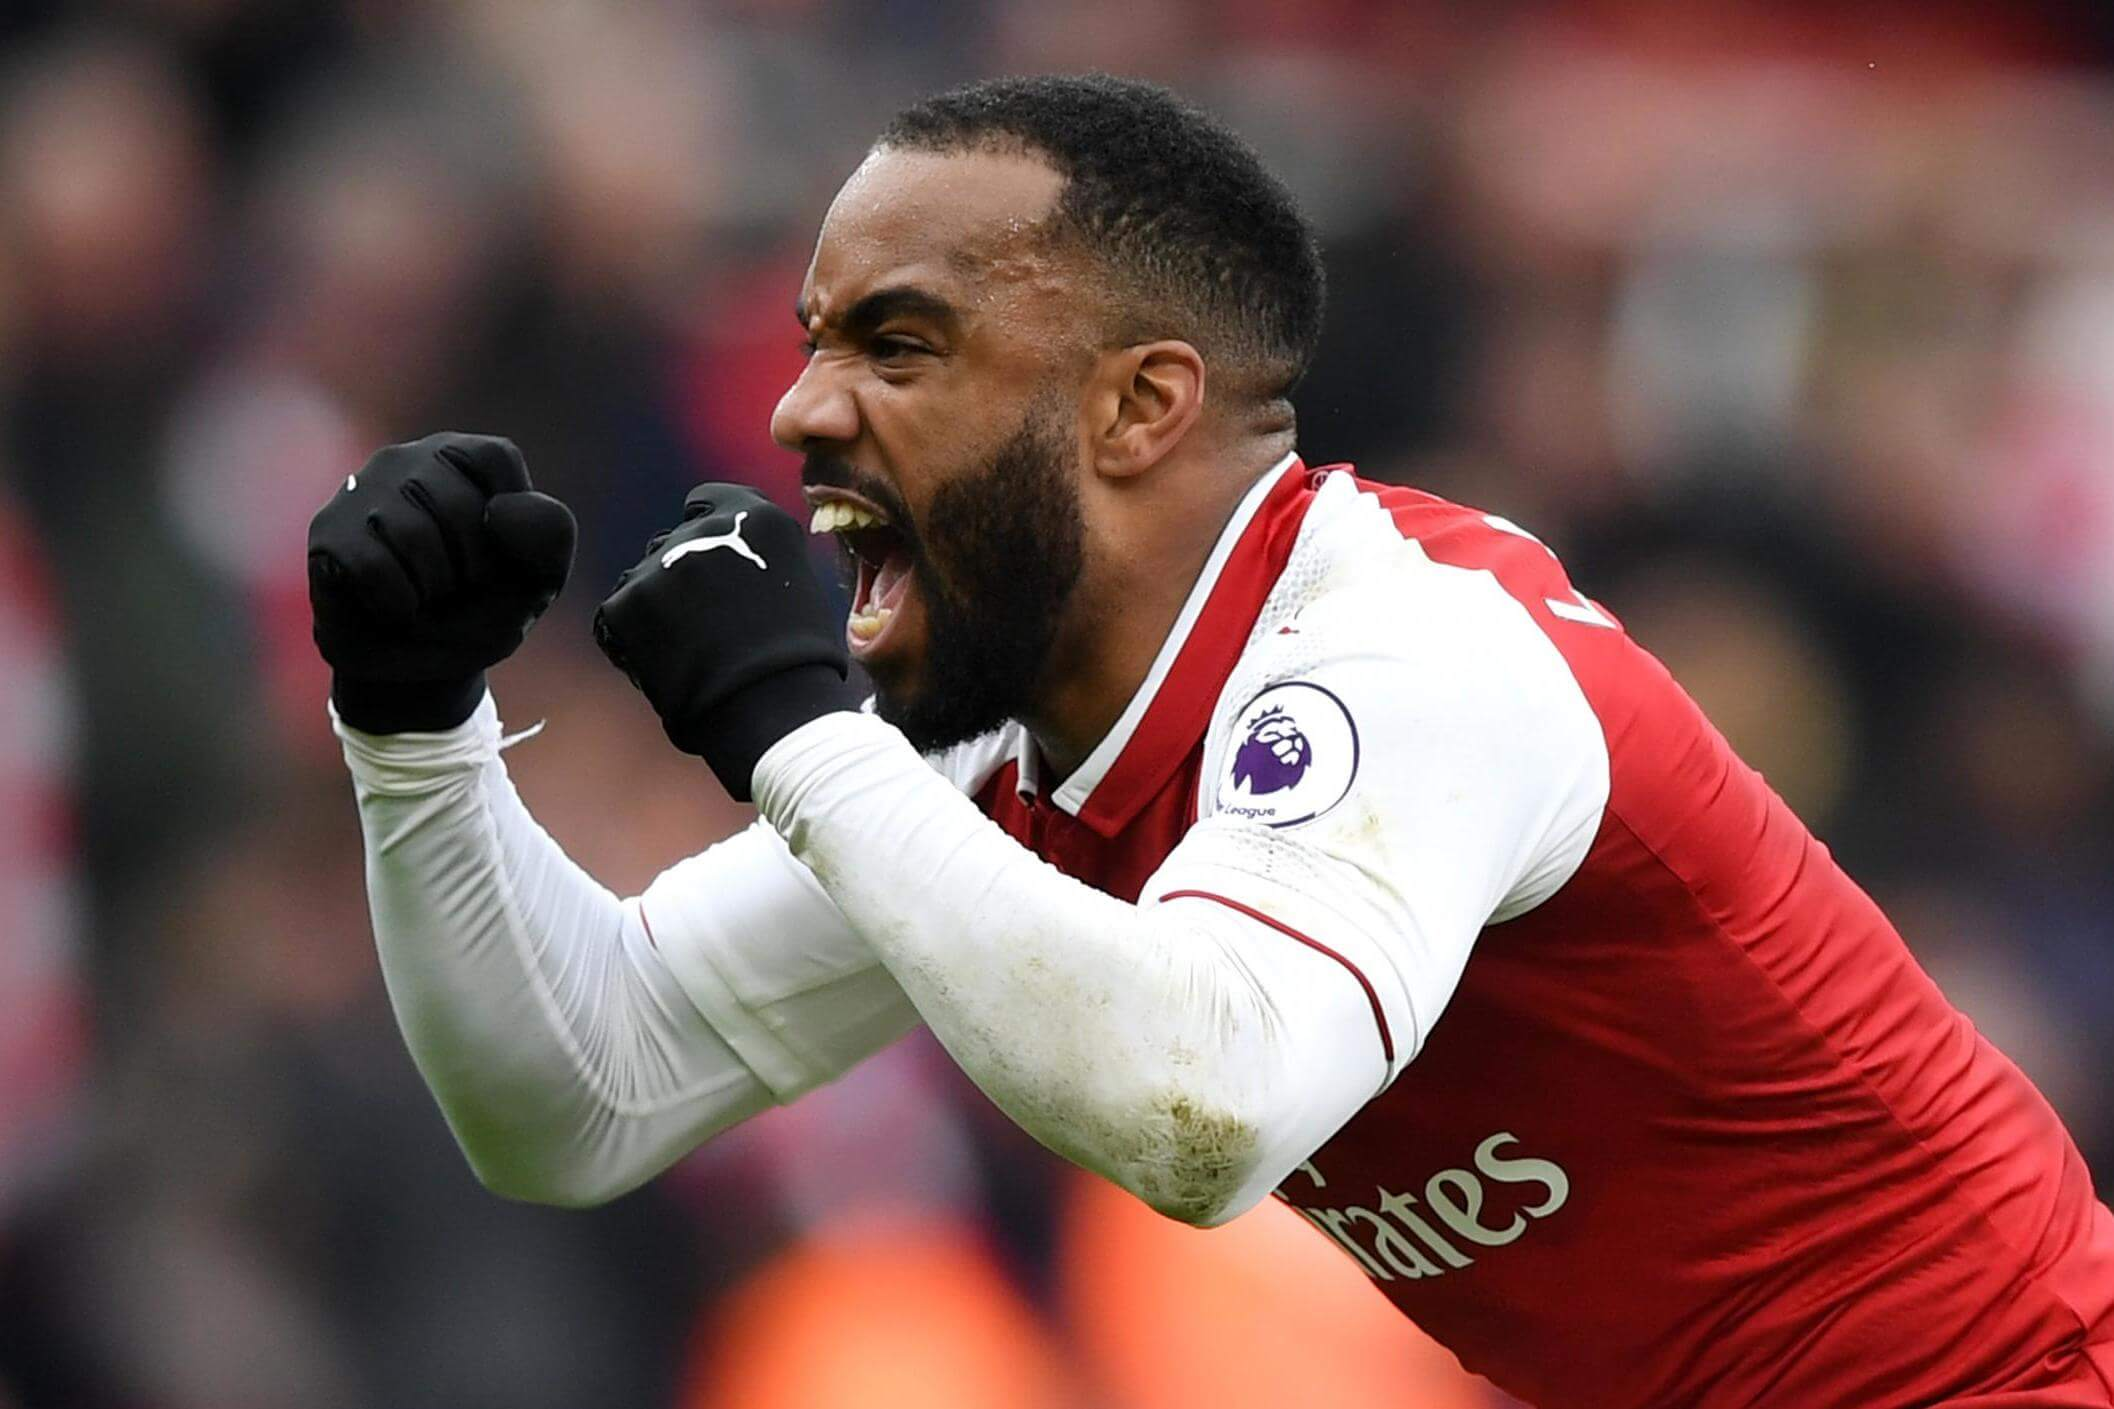 Lacazette scores a brace for Arsenal against CSKA Moscow in the UEFA Europa League